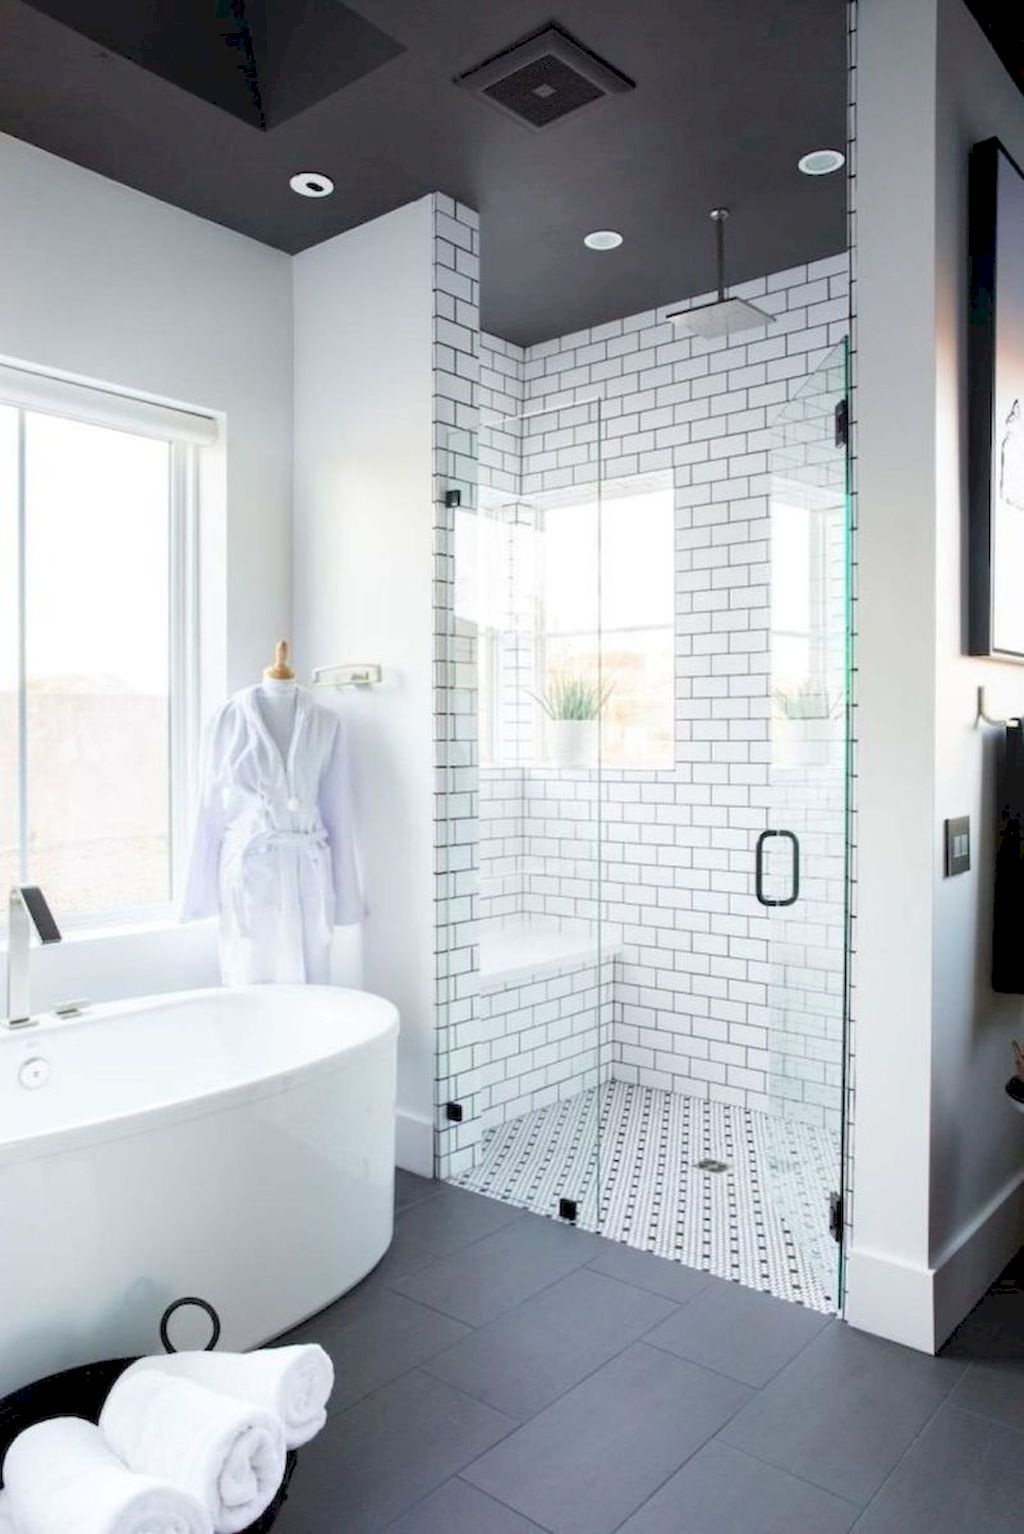 Luxury Bathroom Master Baths Bathtubs Is No Question Important For Your Home Whether You Cho Bathroom Remodel Shower Bathrooms Remodel Bathroom Remodel Master